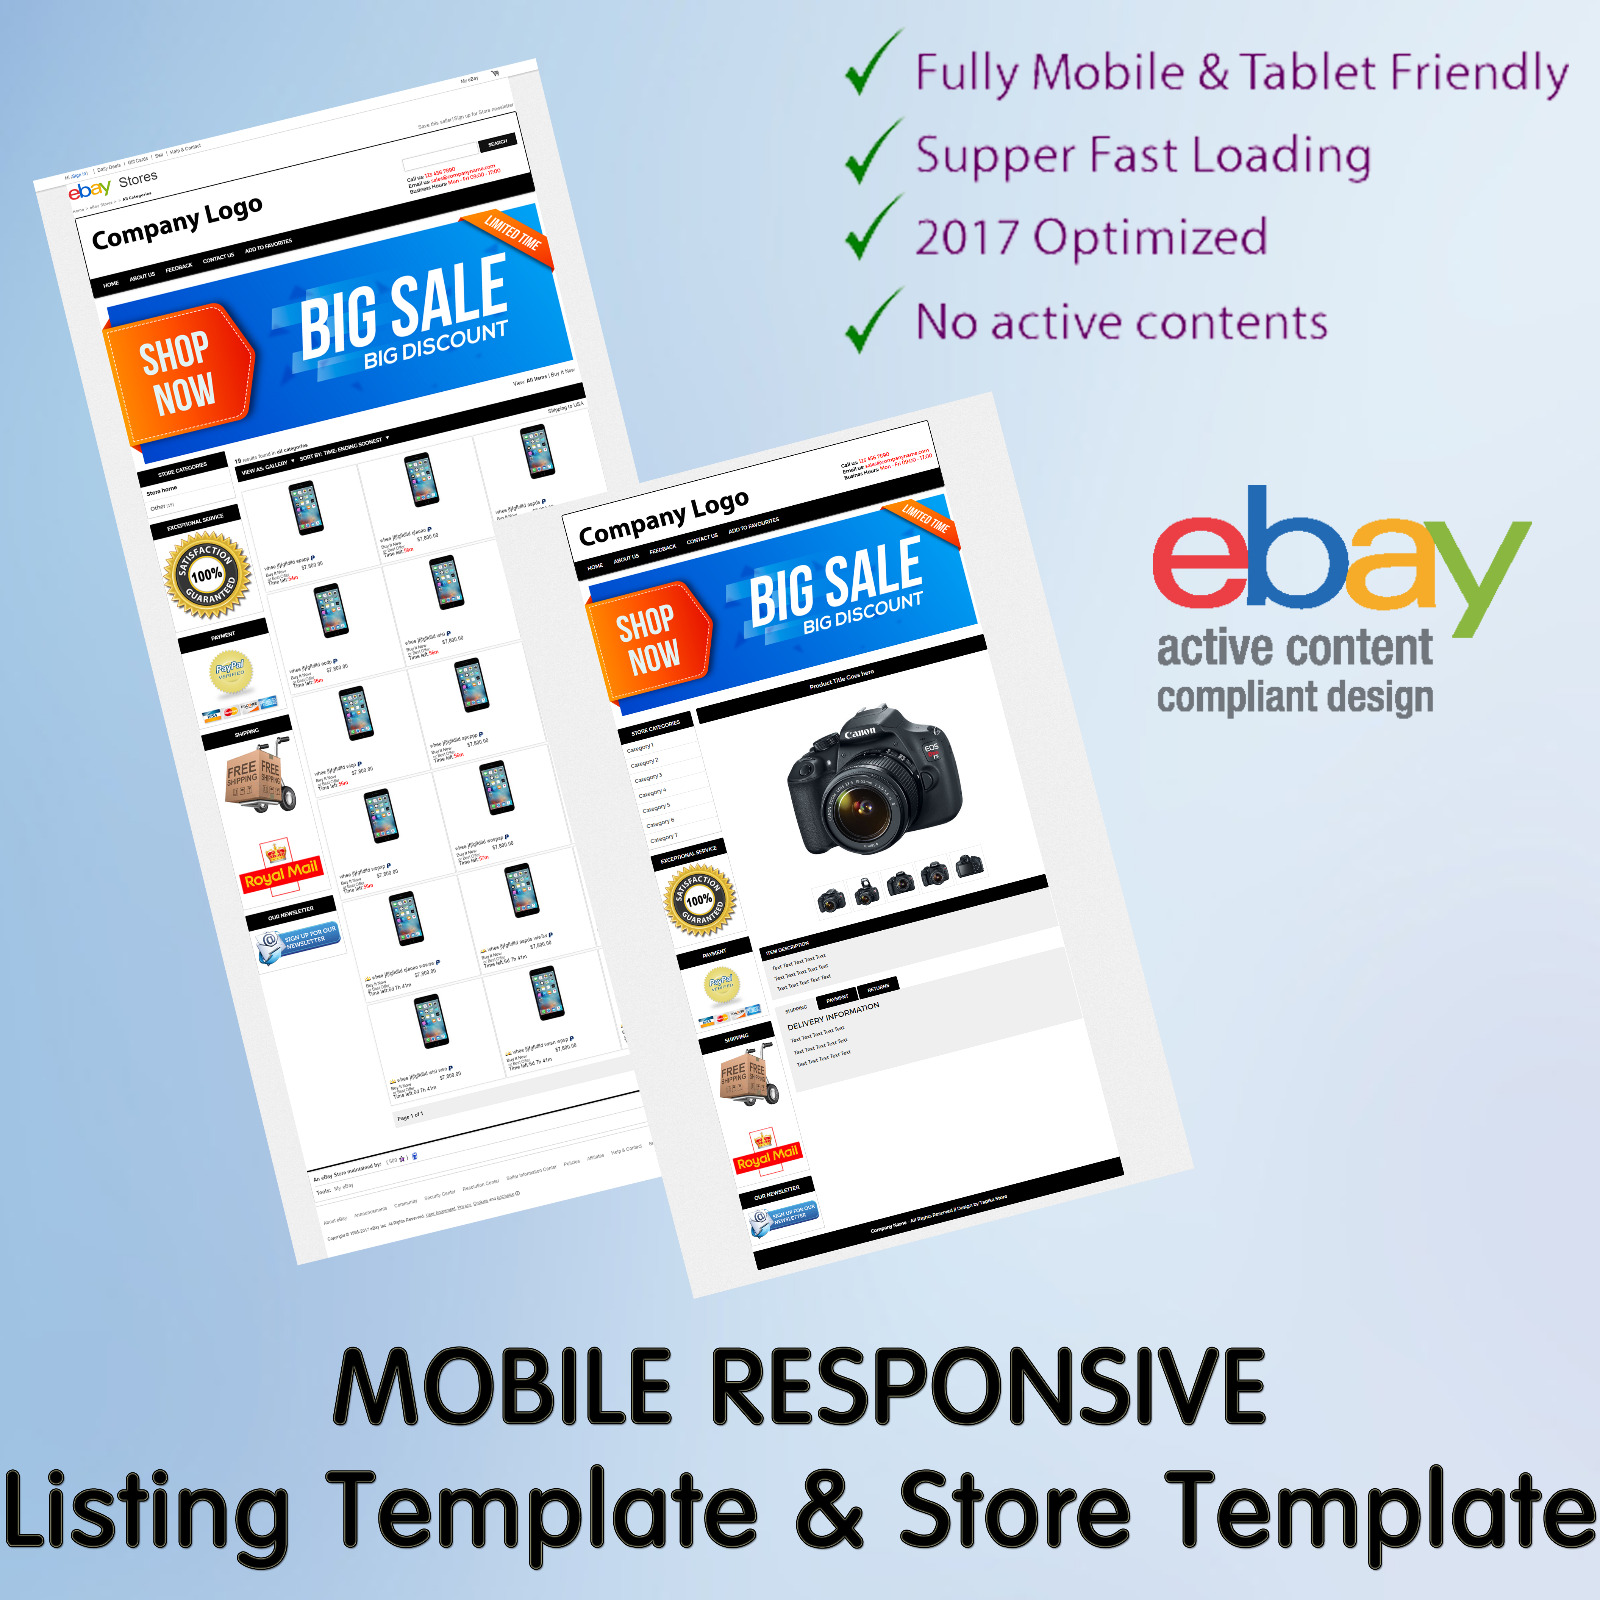 Ebay html template image collections professional report for Ebay store template tutorial